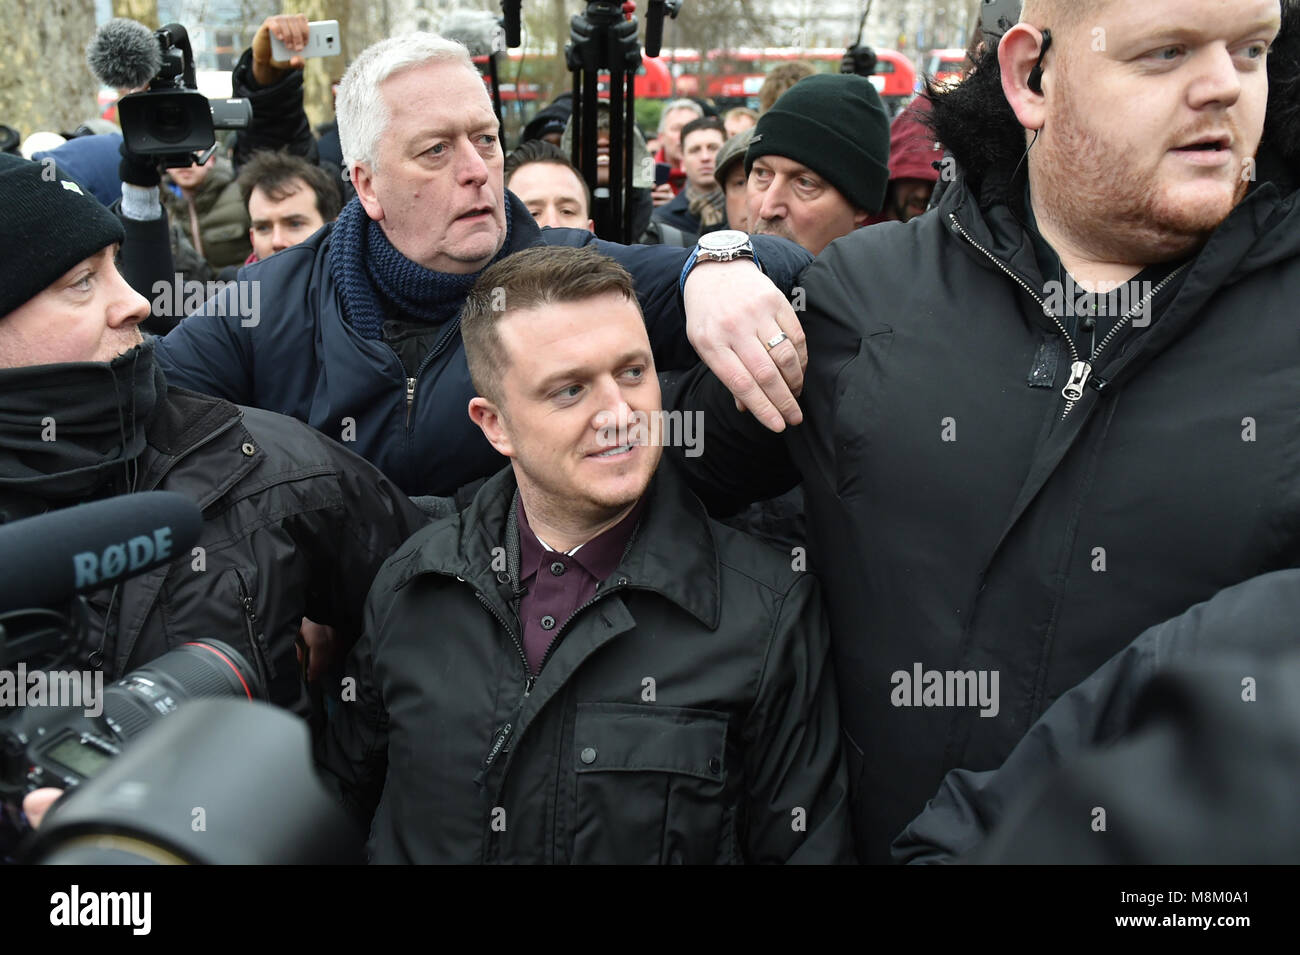 London, United Kingdom. 18 March 2018. Stephen Lennon, known by the pseudonym Tommy Robinson, makes a speech at - Stock Image